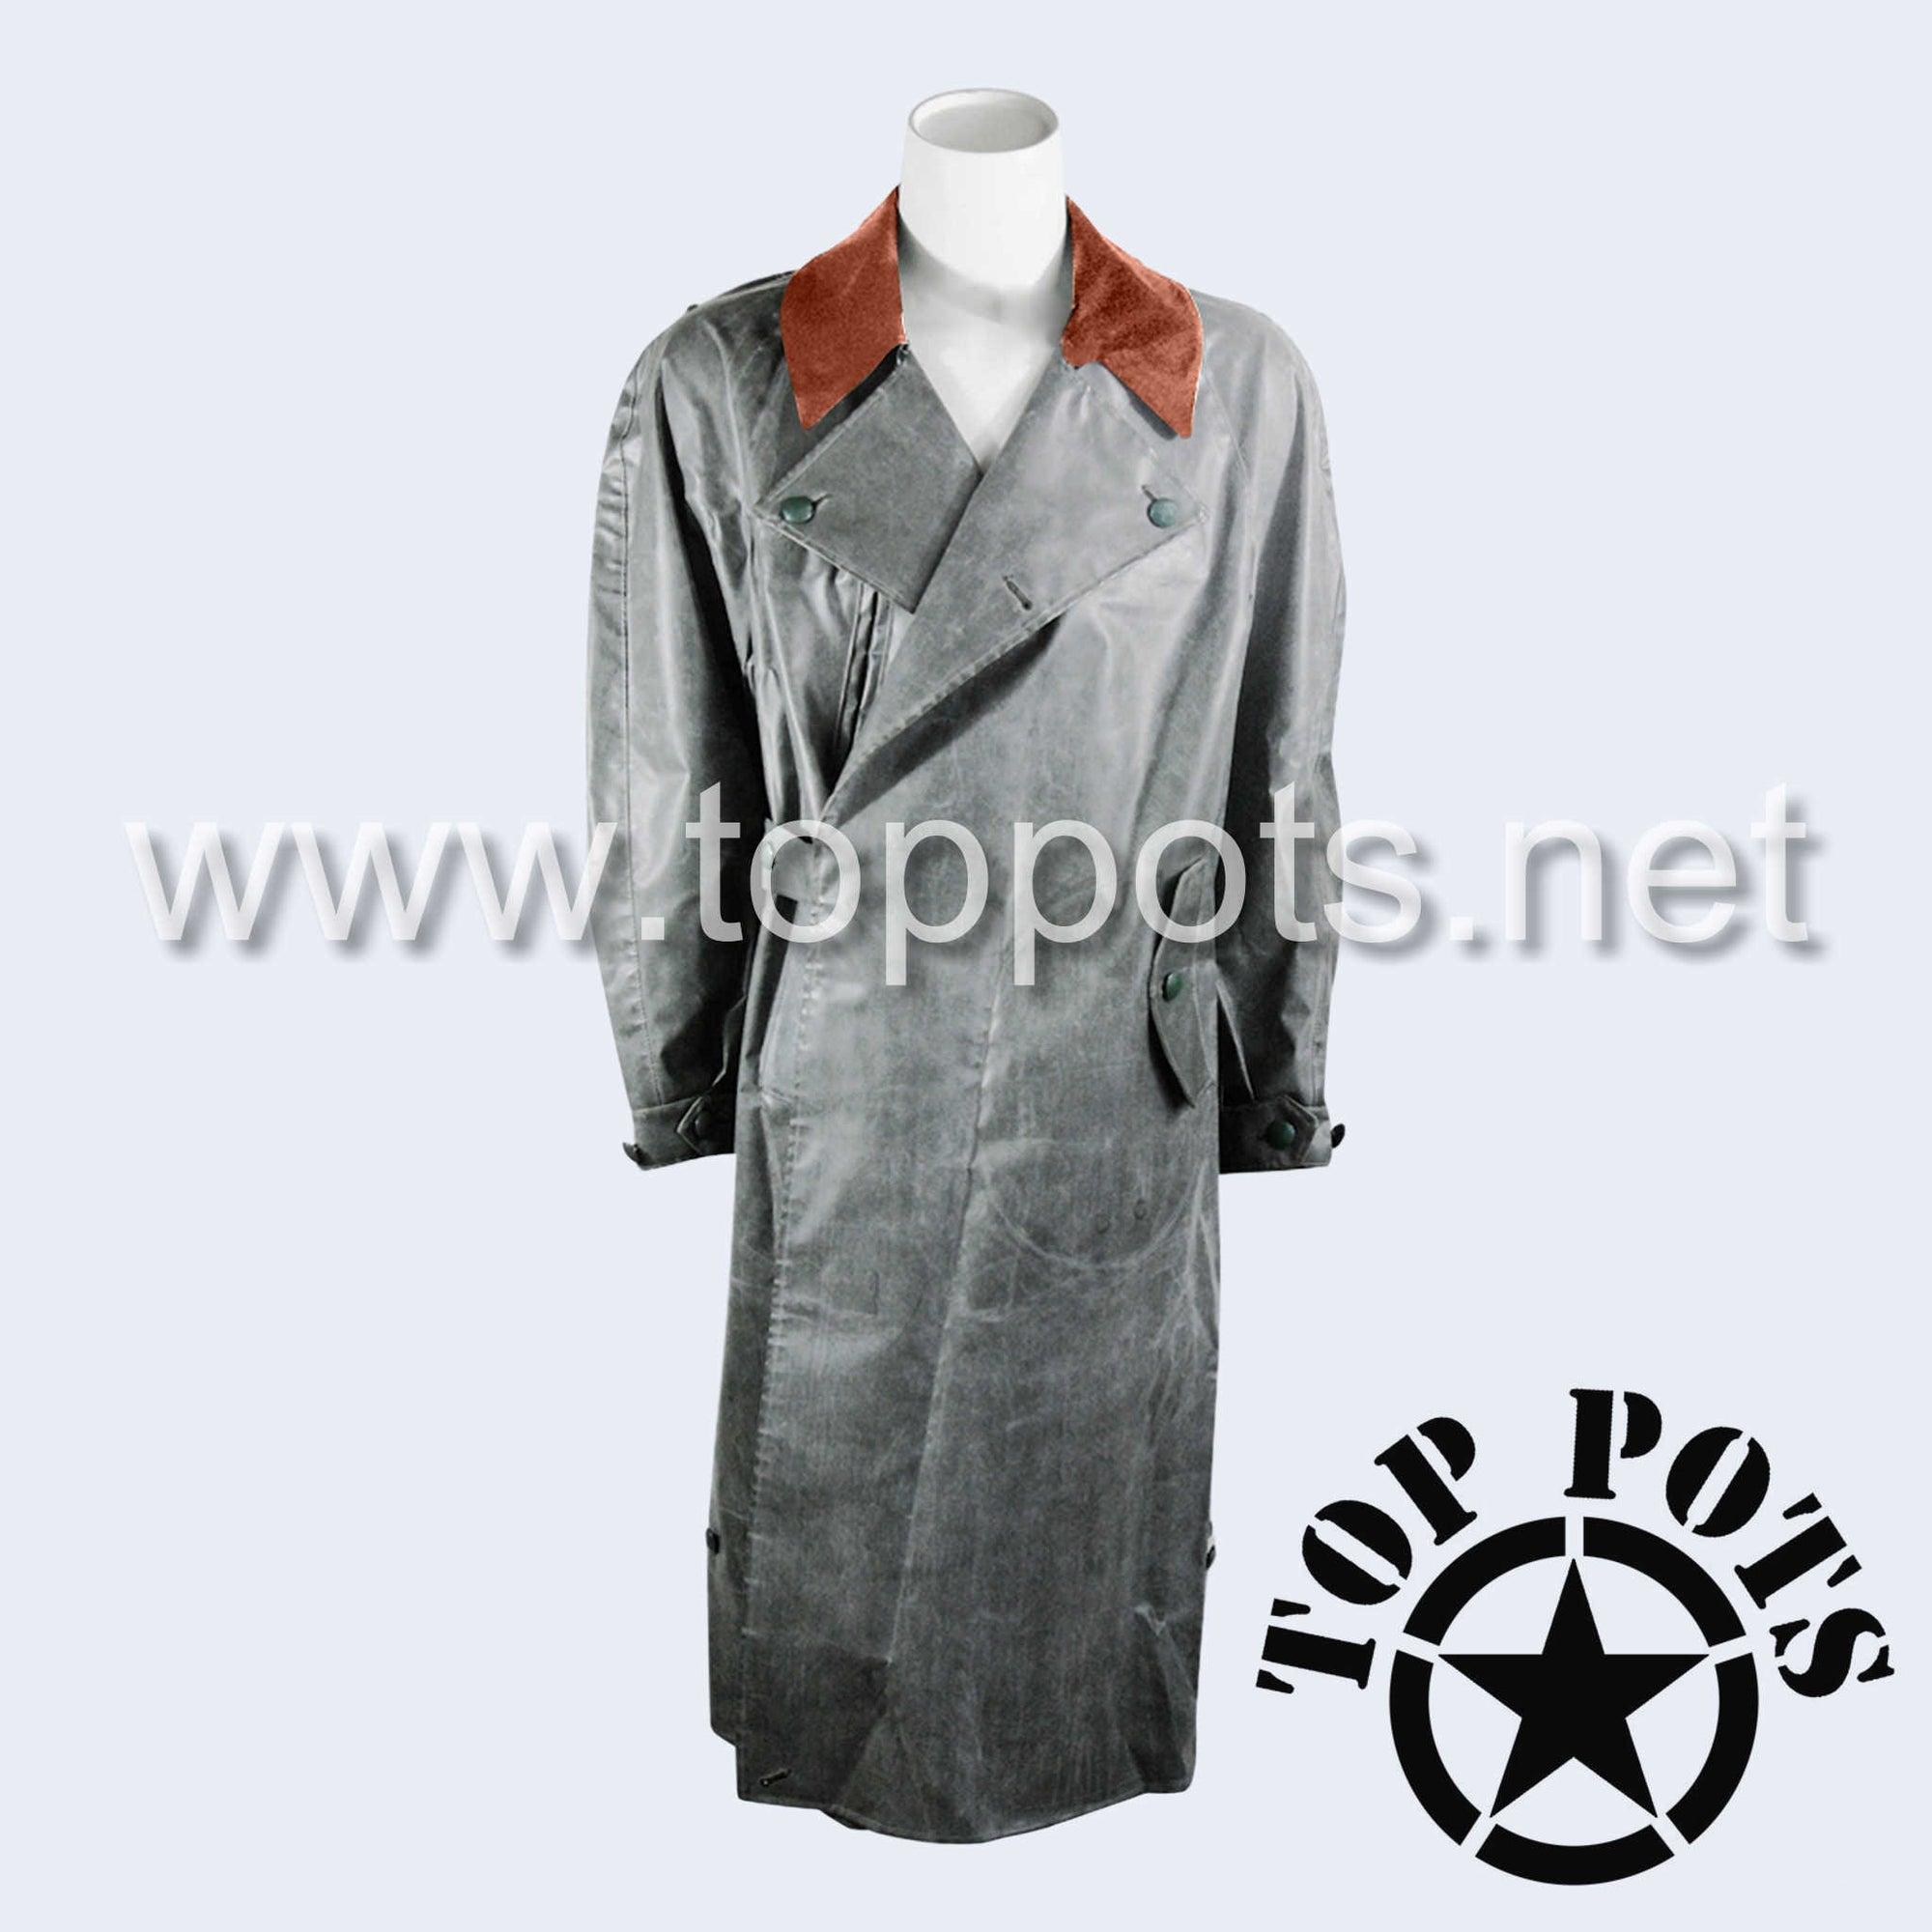 WWII German Army Waffen SS Uniform Motorcycle Rubberized Raincoat Overcoat Jacket - Ordnungspolizei